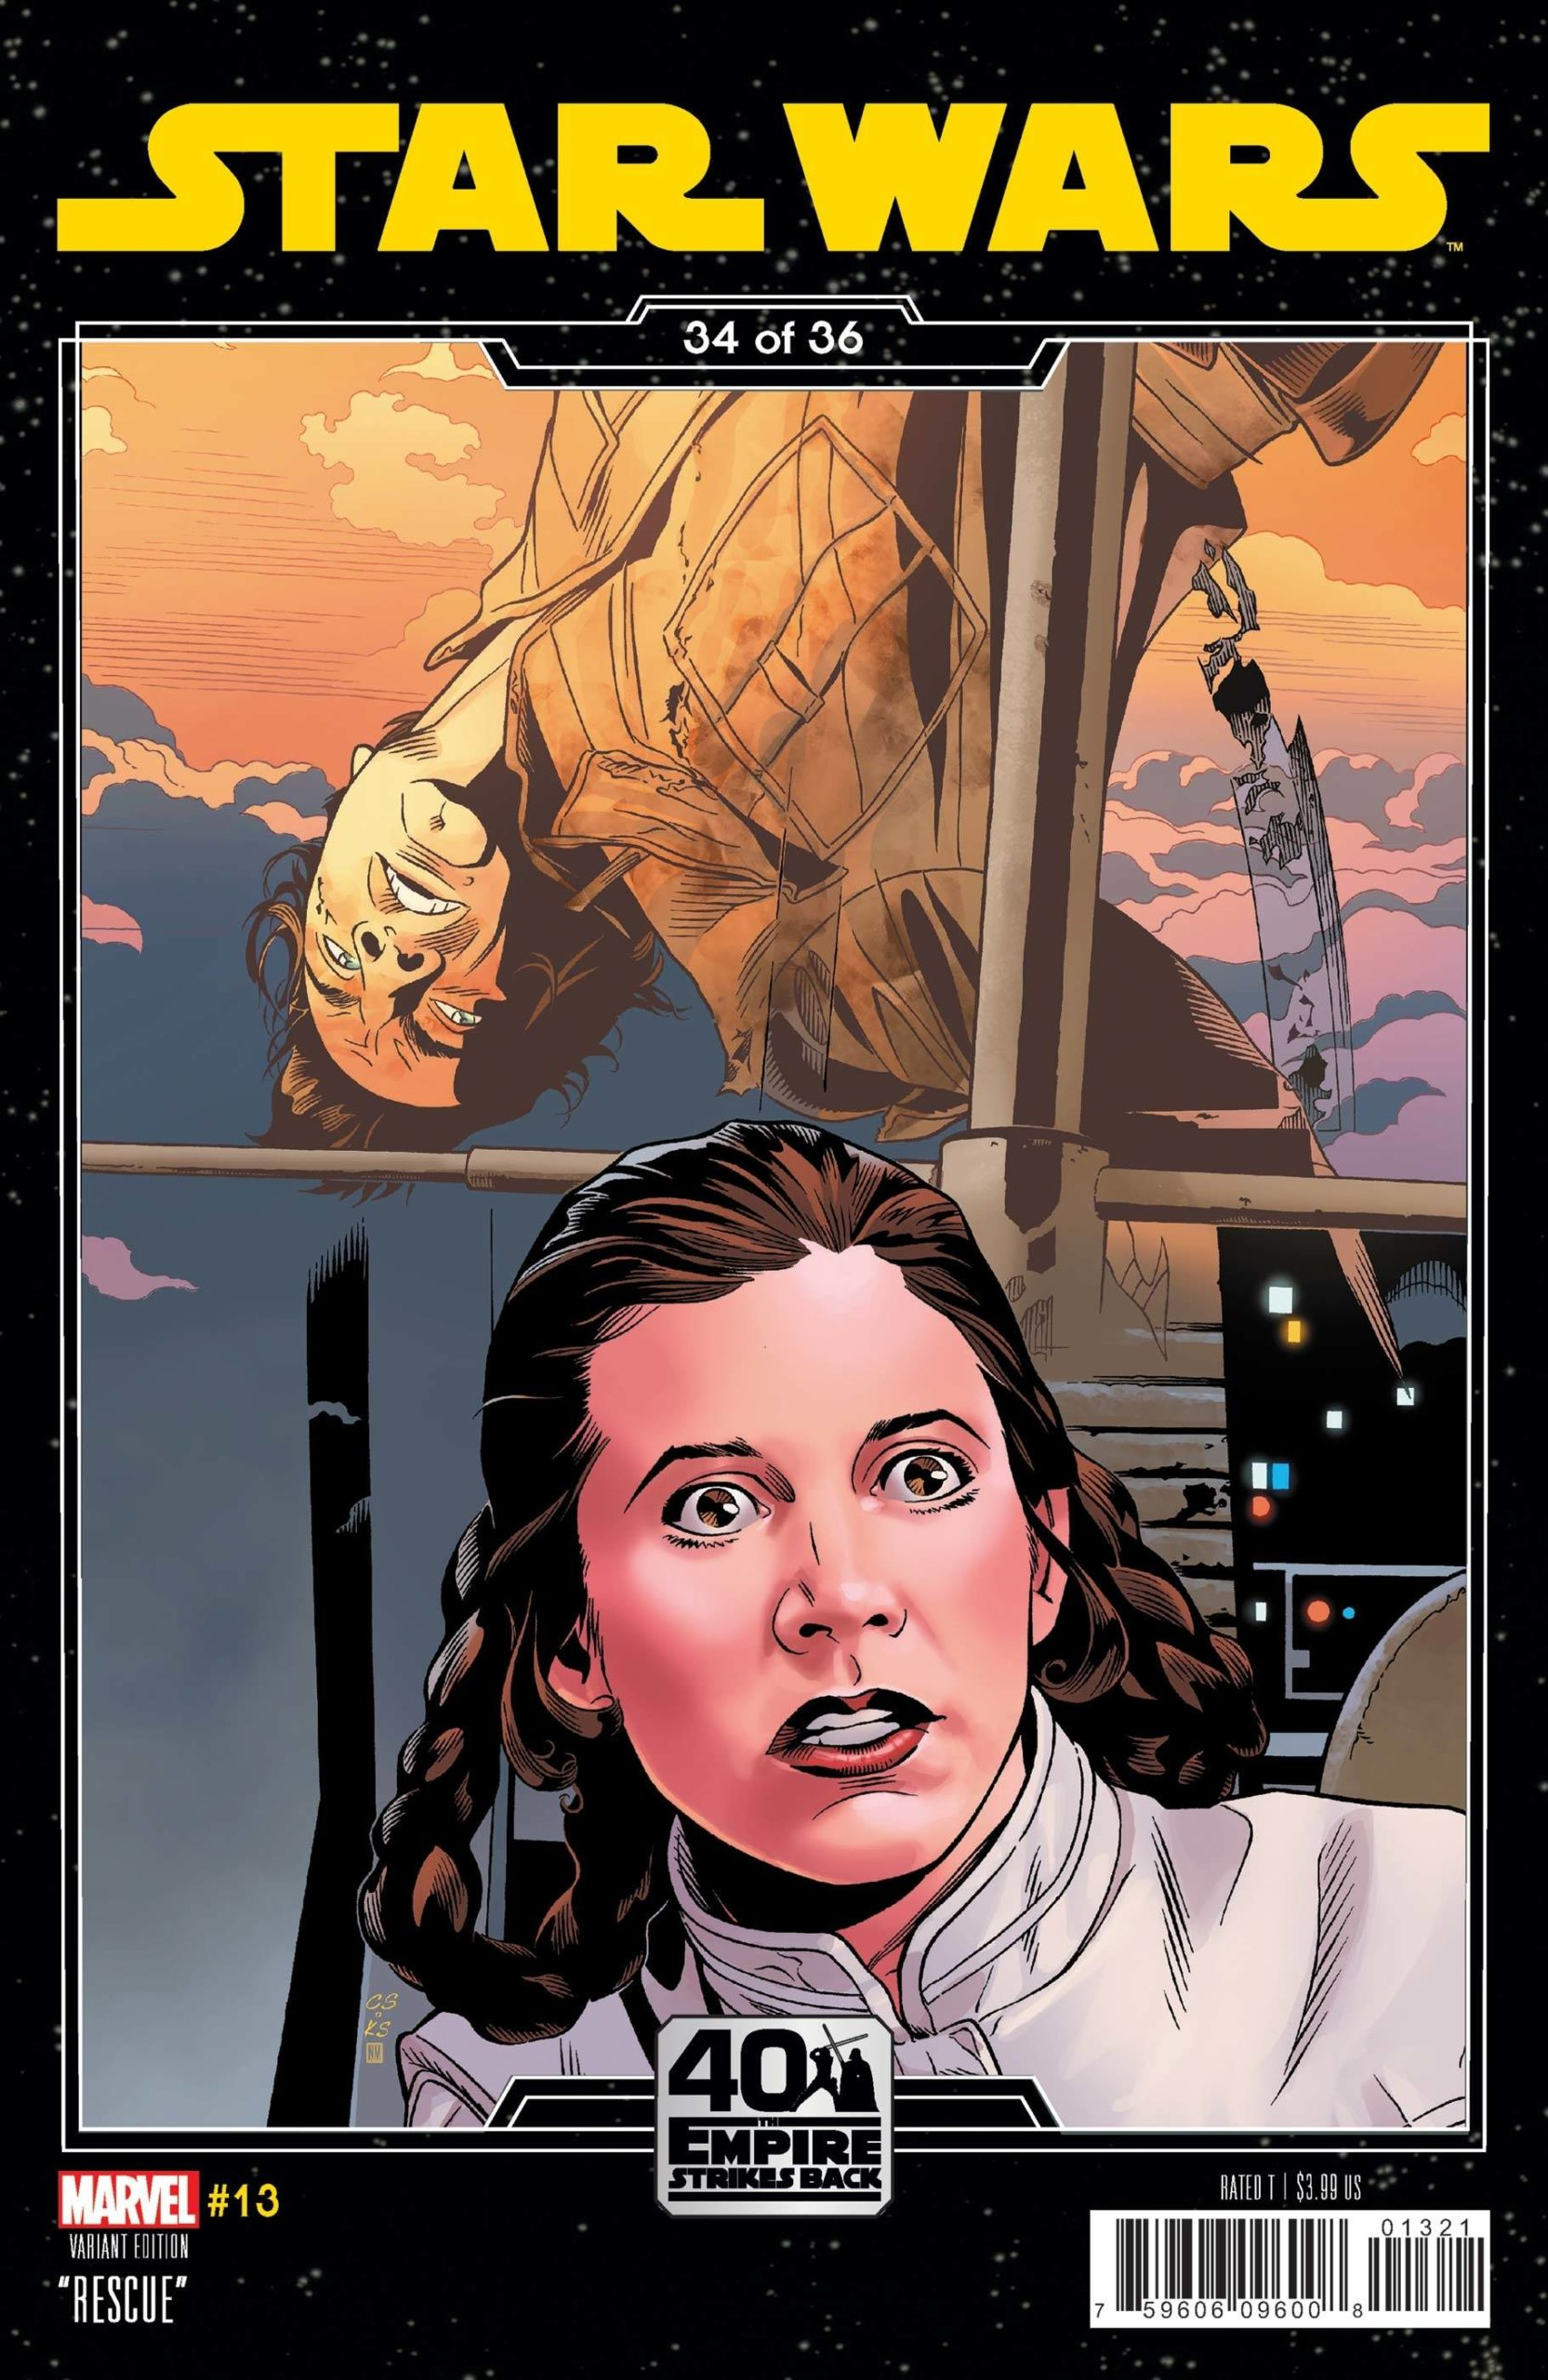 Star Wars #13 (Chris Sprouse The Empire Strikes Back Variant Cover) (12.05.2021)